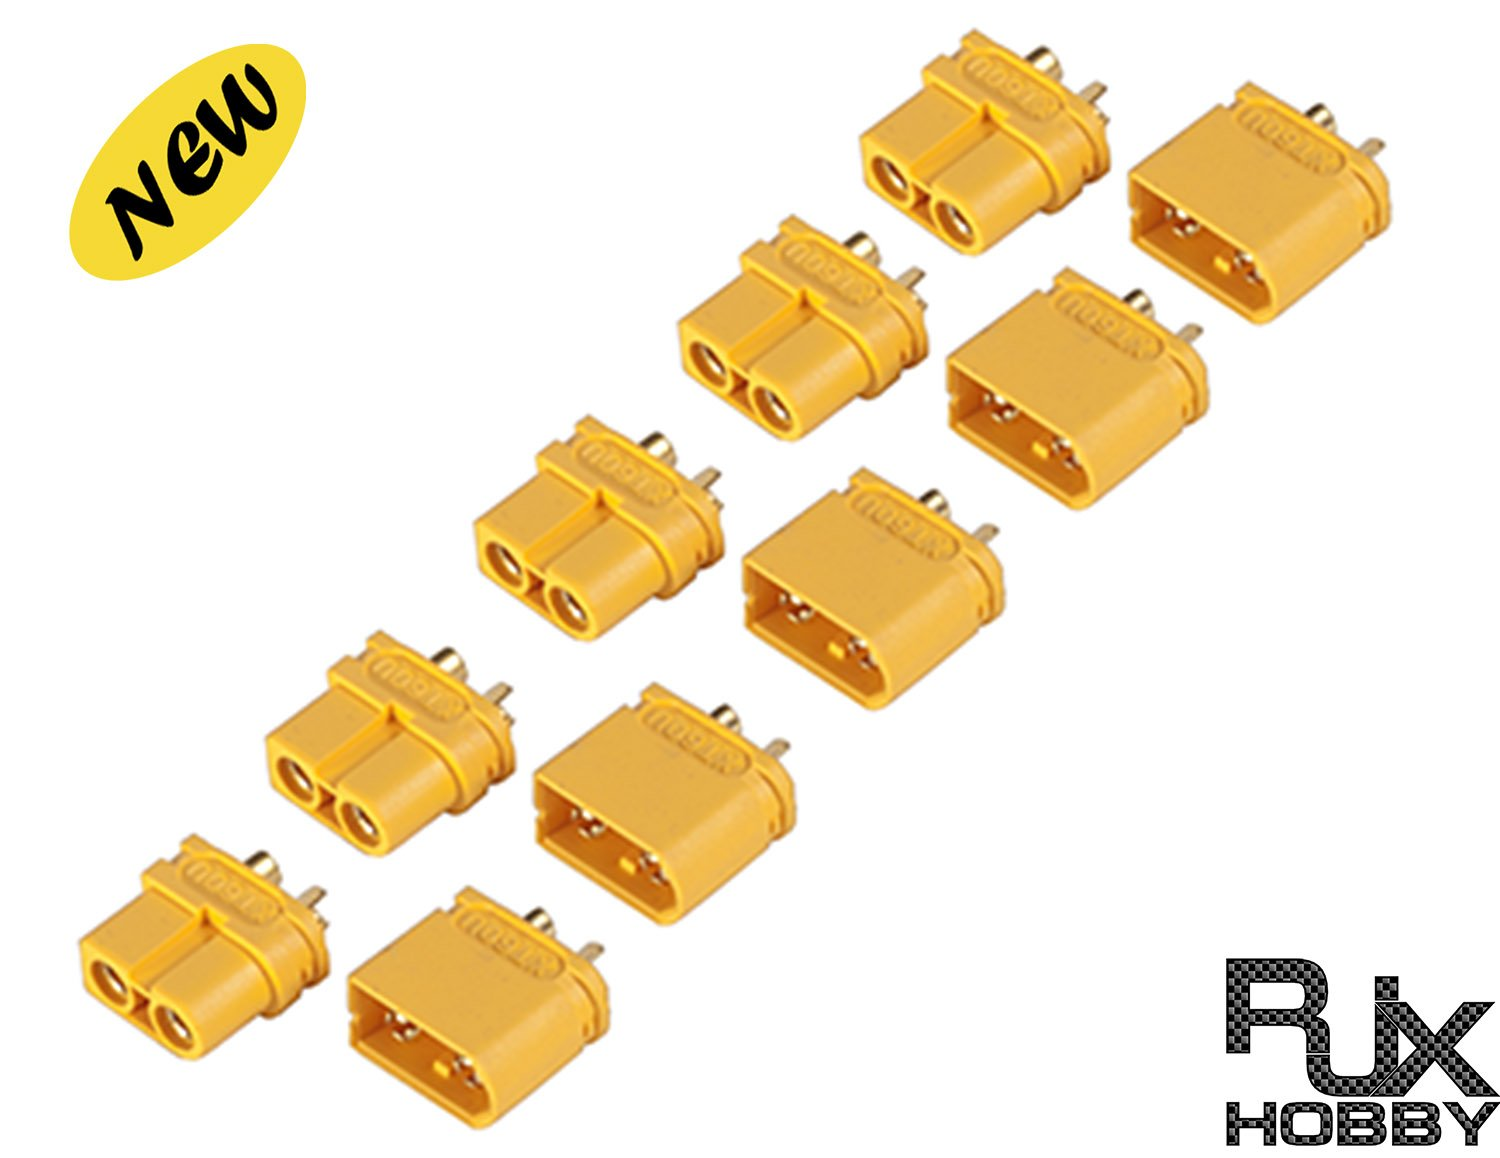 Rjxhobby 5xpairs Xt60u Upgraded Xt60 Smaller Size Male Hoppy Tail Light Converter Wiring Diagram Female Bullet Connectors Plugs For Rc Lipo Battery Toys Games